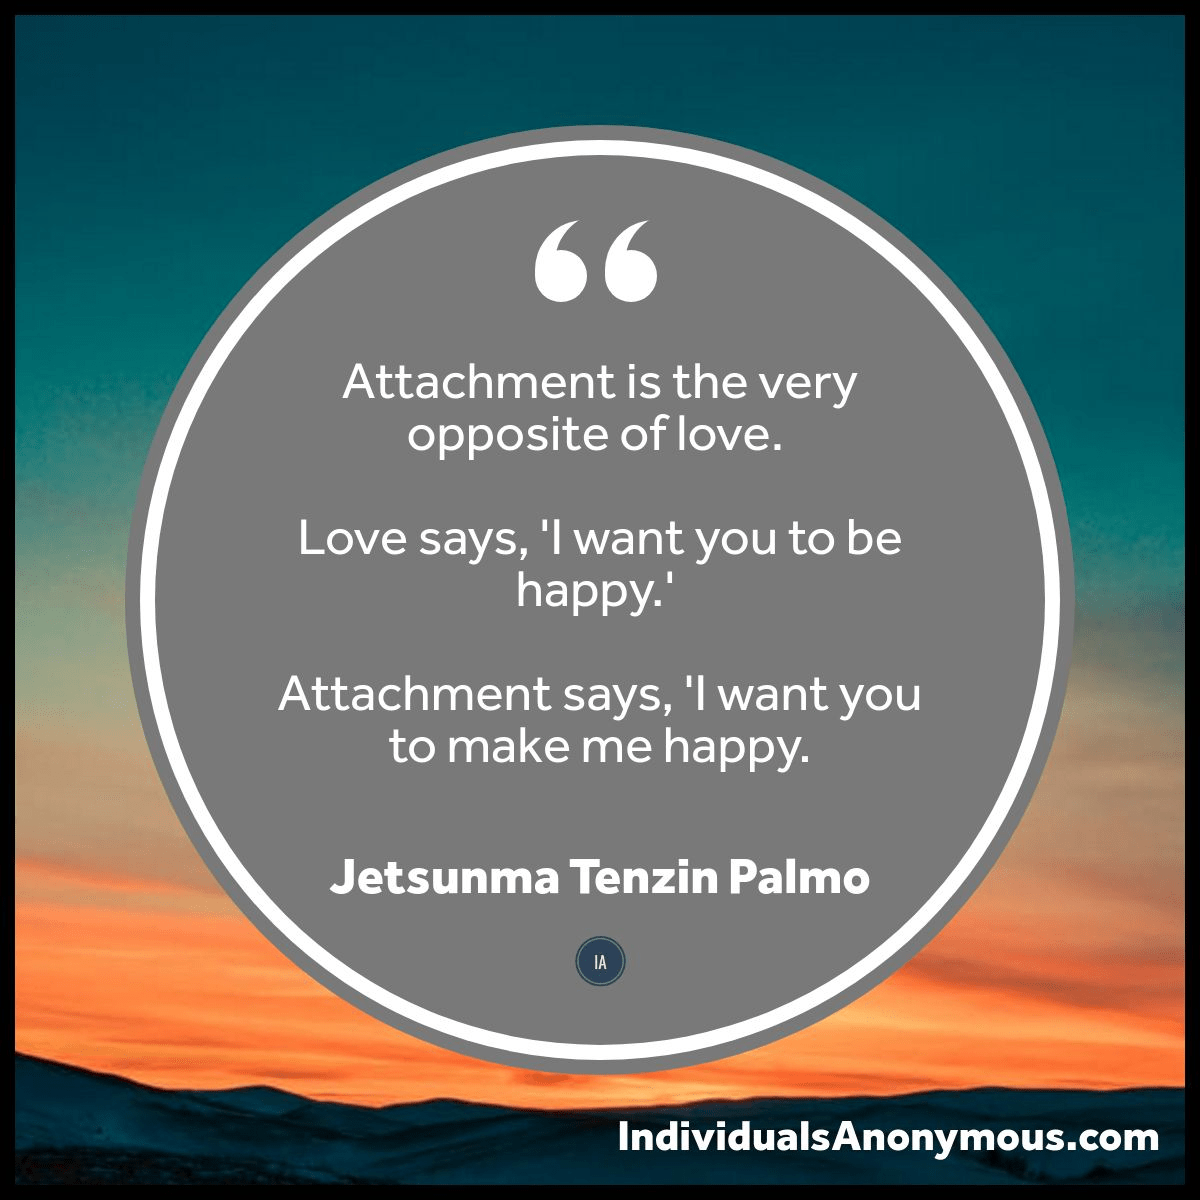 Love vs Attachment